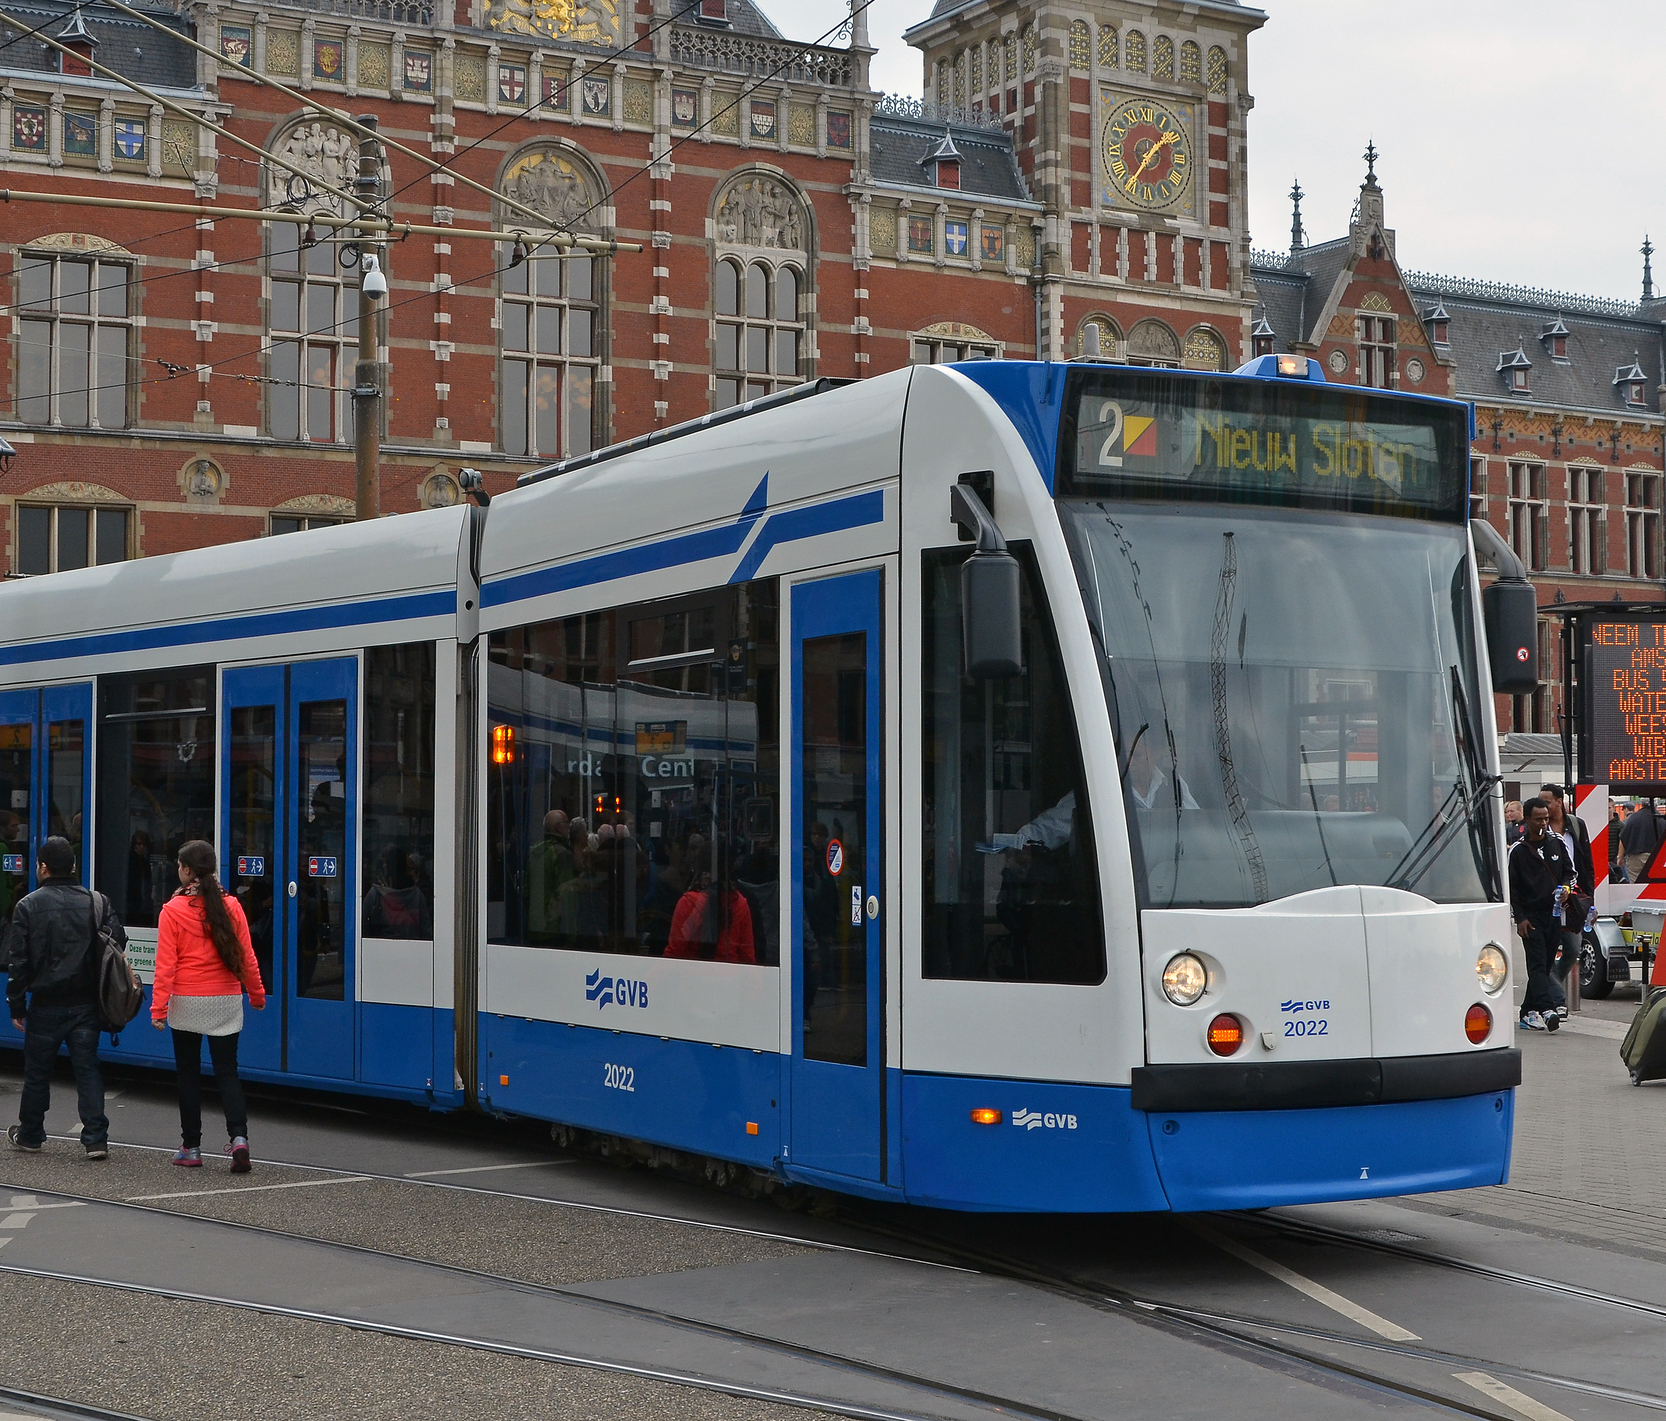 Case Study: Amsterdam Transit Operator Seeks to Go Nearly 100% Digital for Ticketing to Cut Costs and Enhance Service